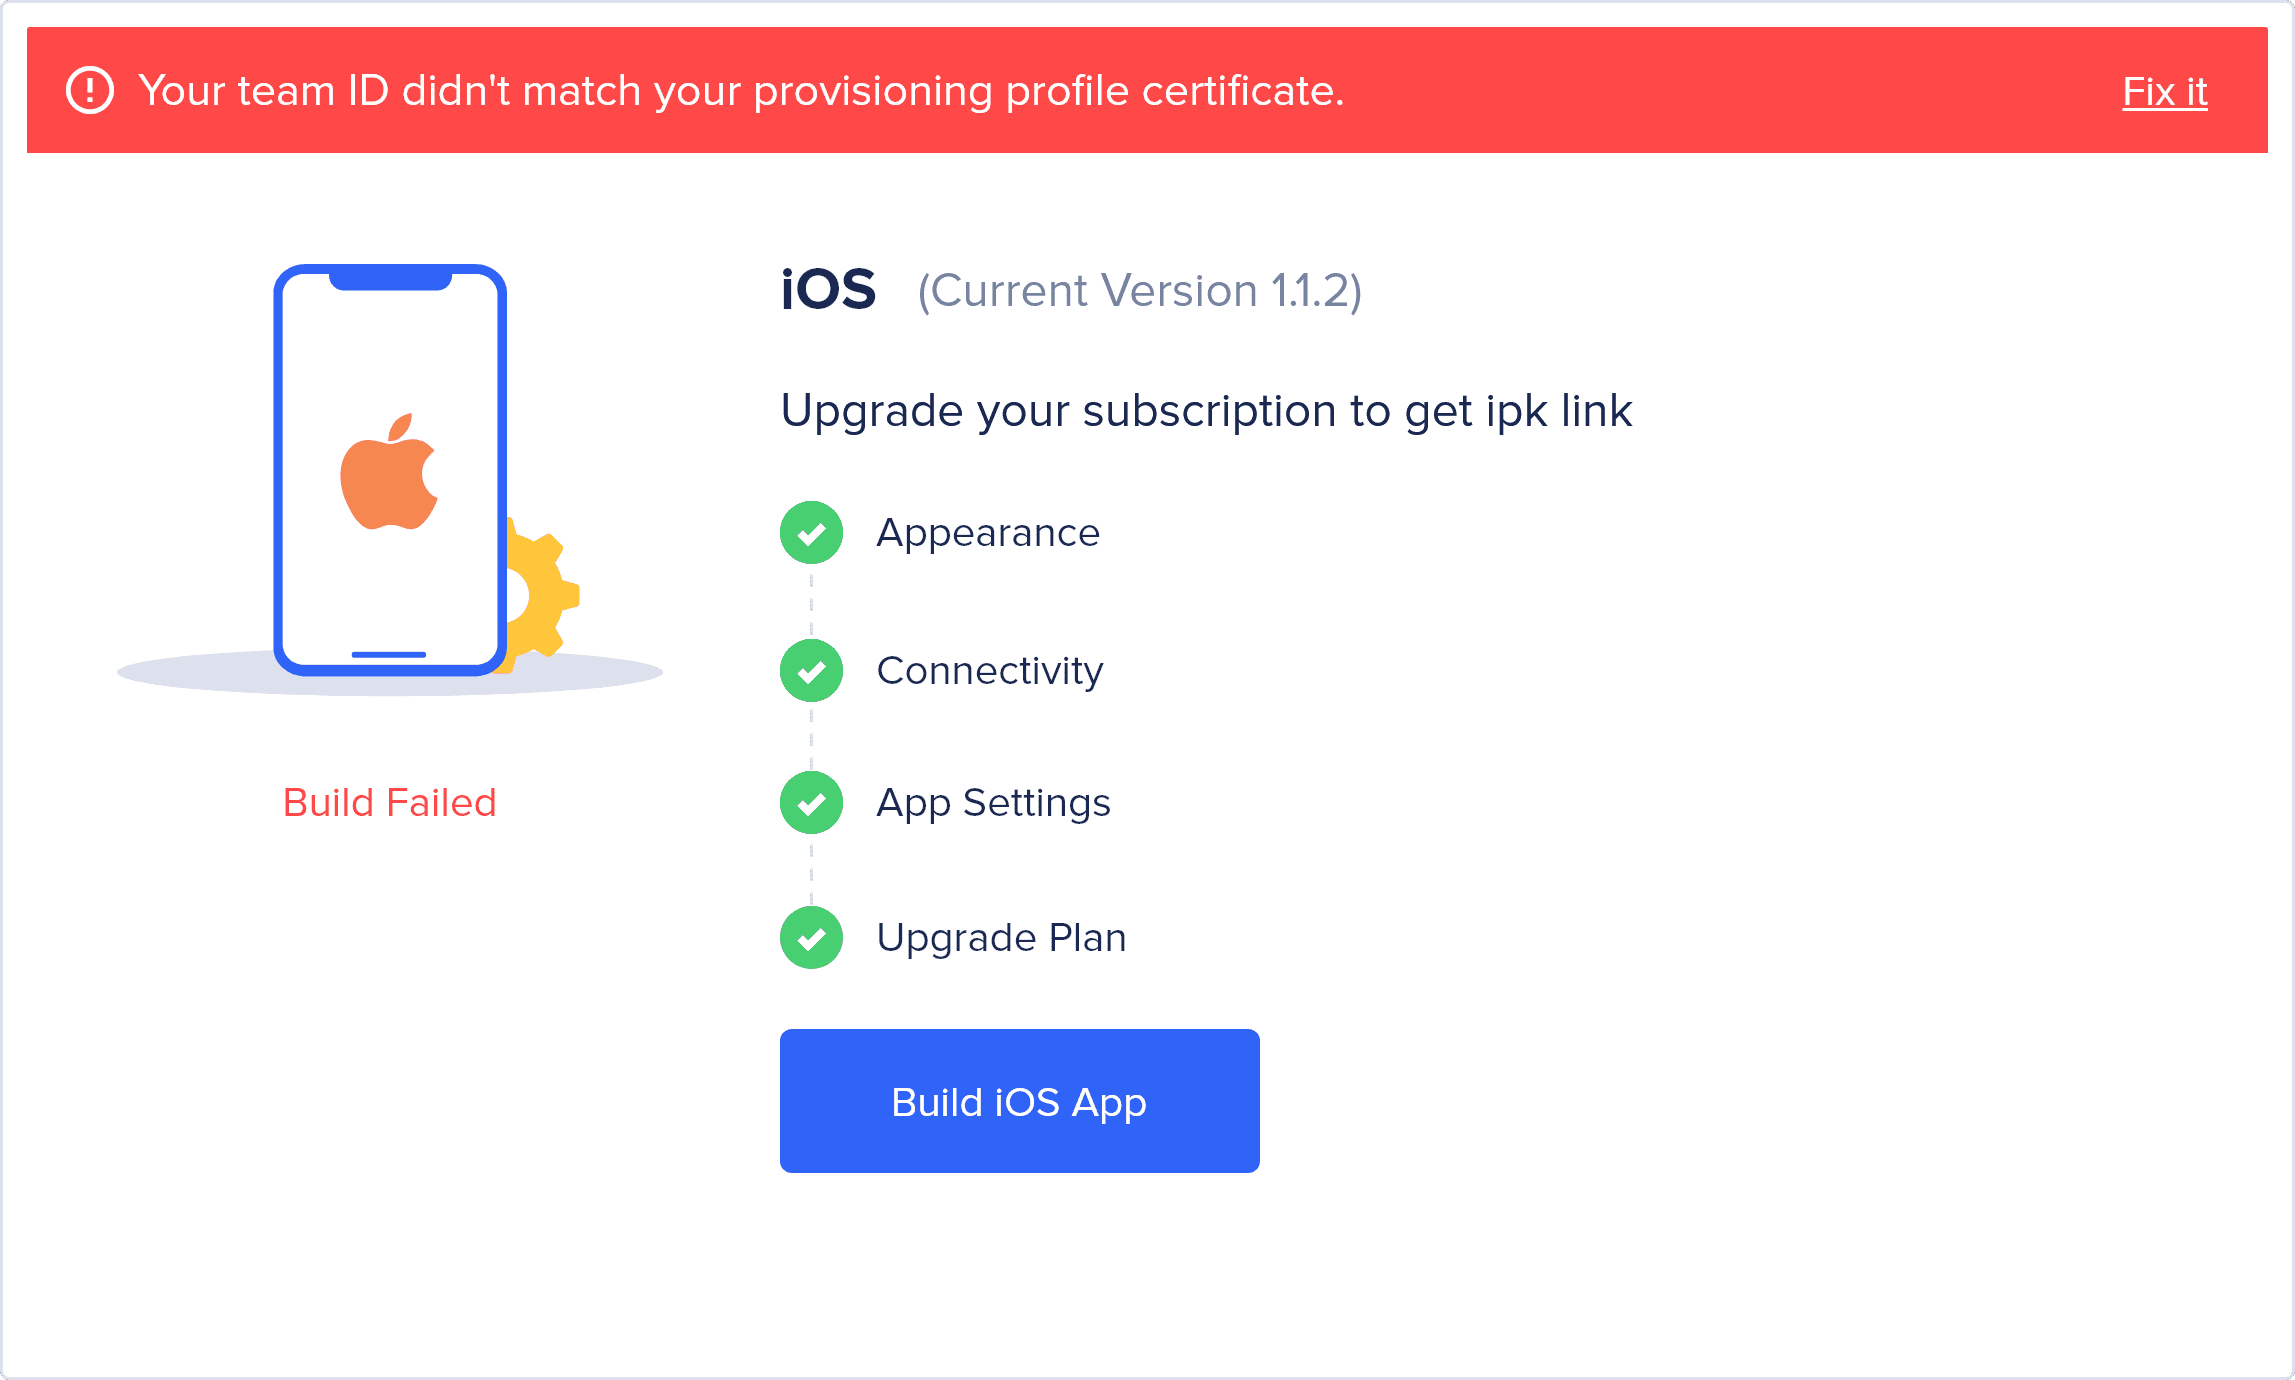 iOS build generation simplified with better error handling